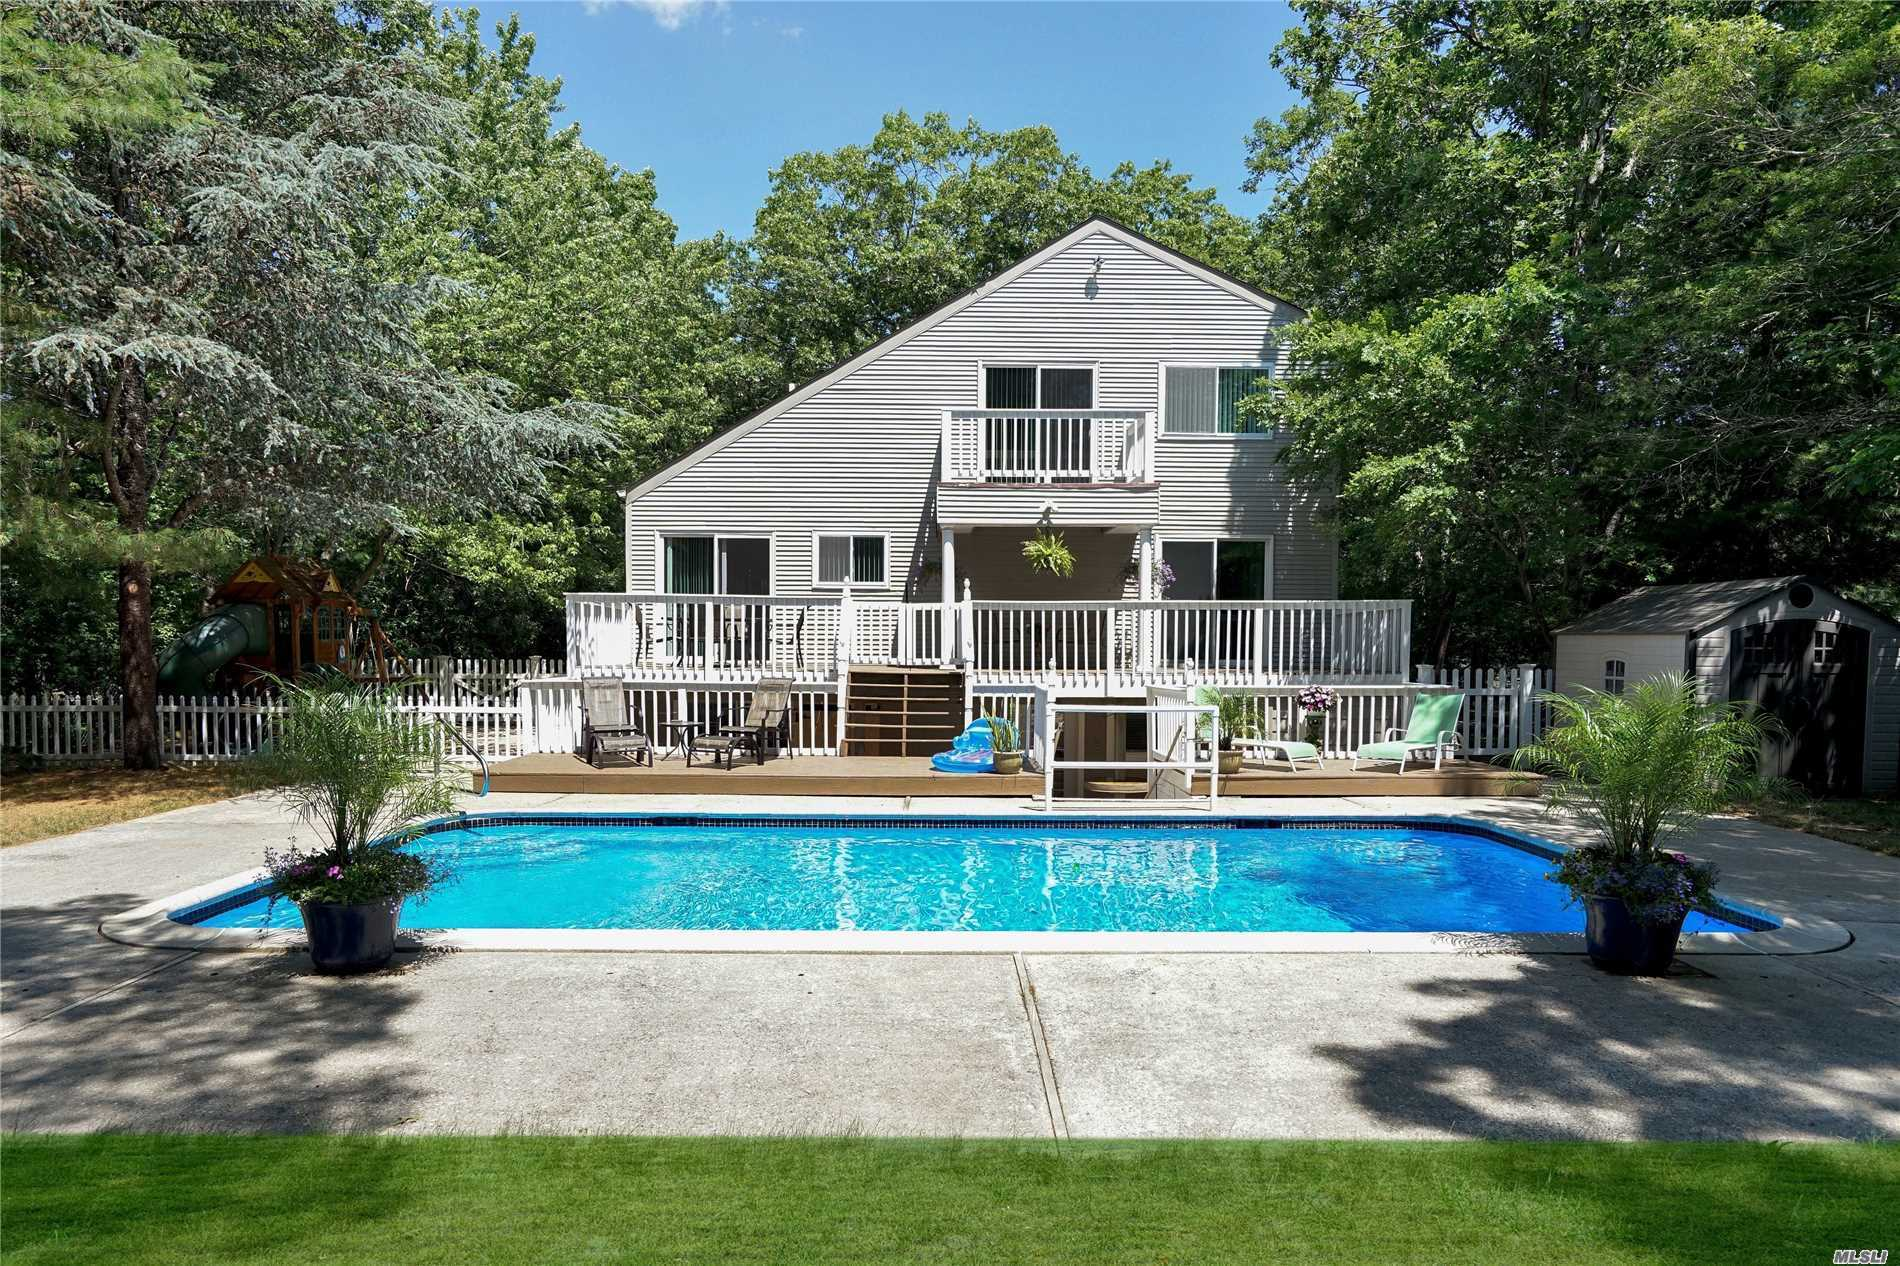 18 Scrub Oak Rd - Quogue, New York